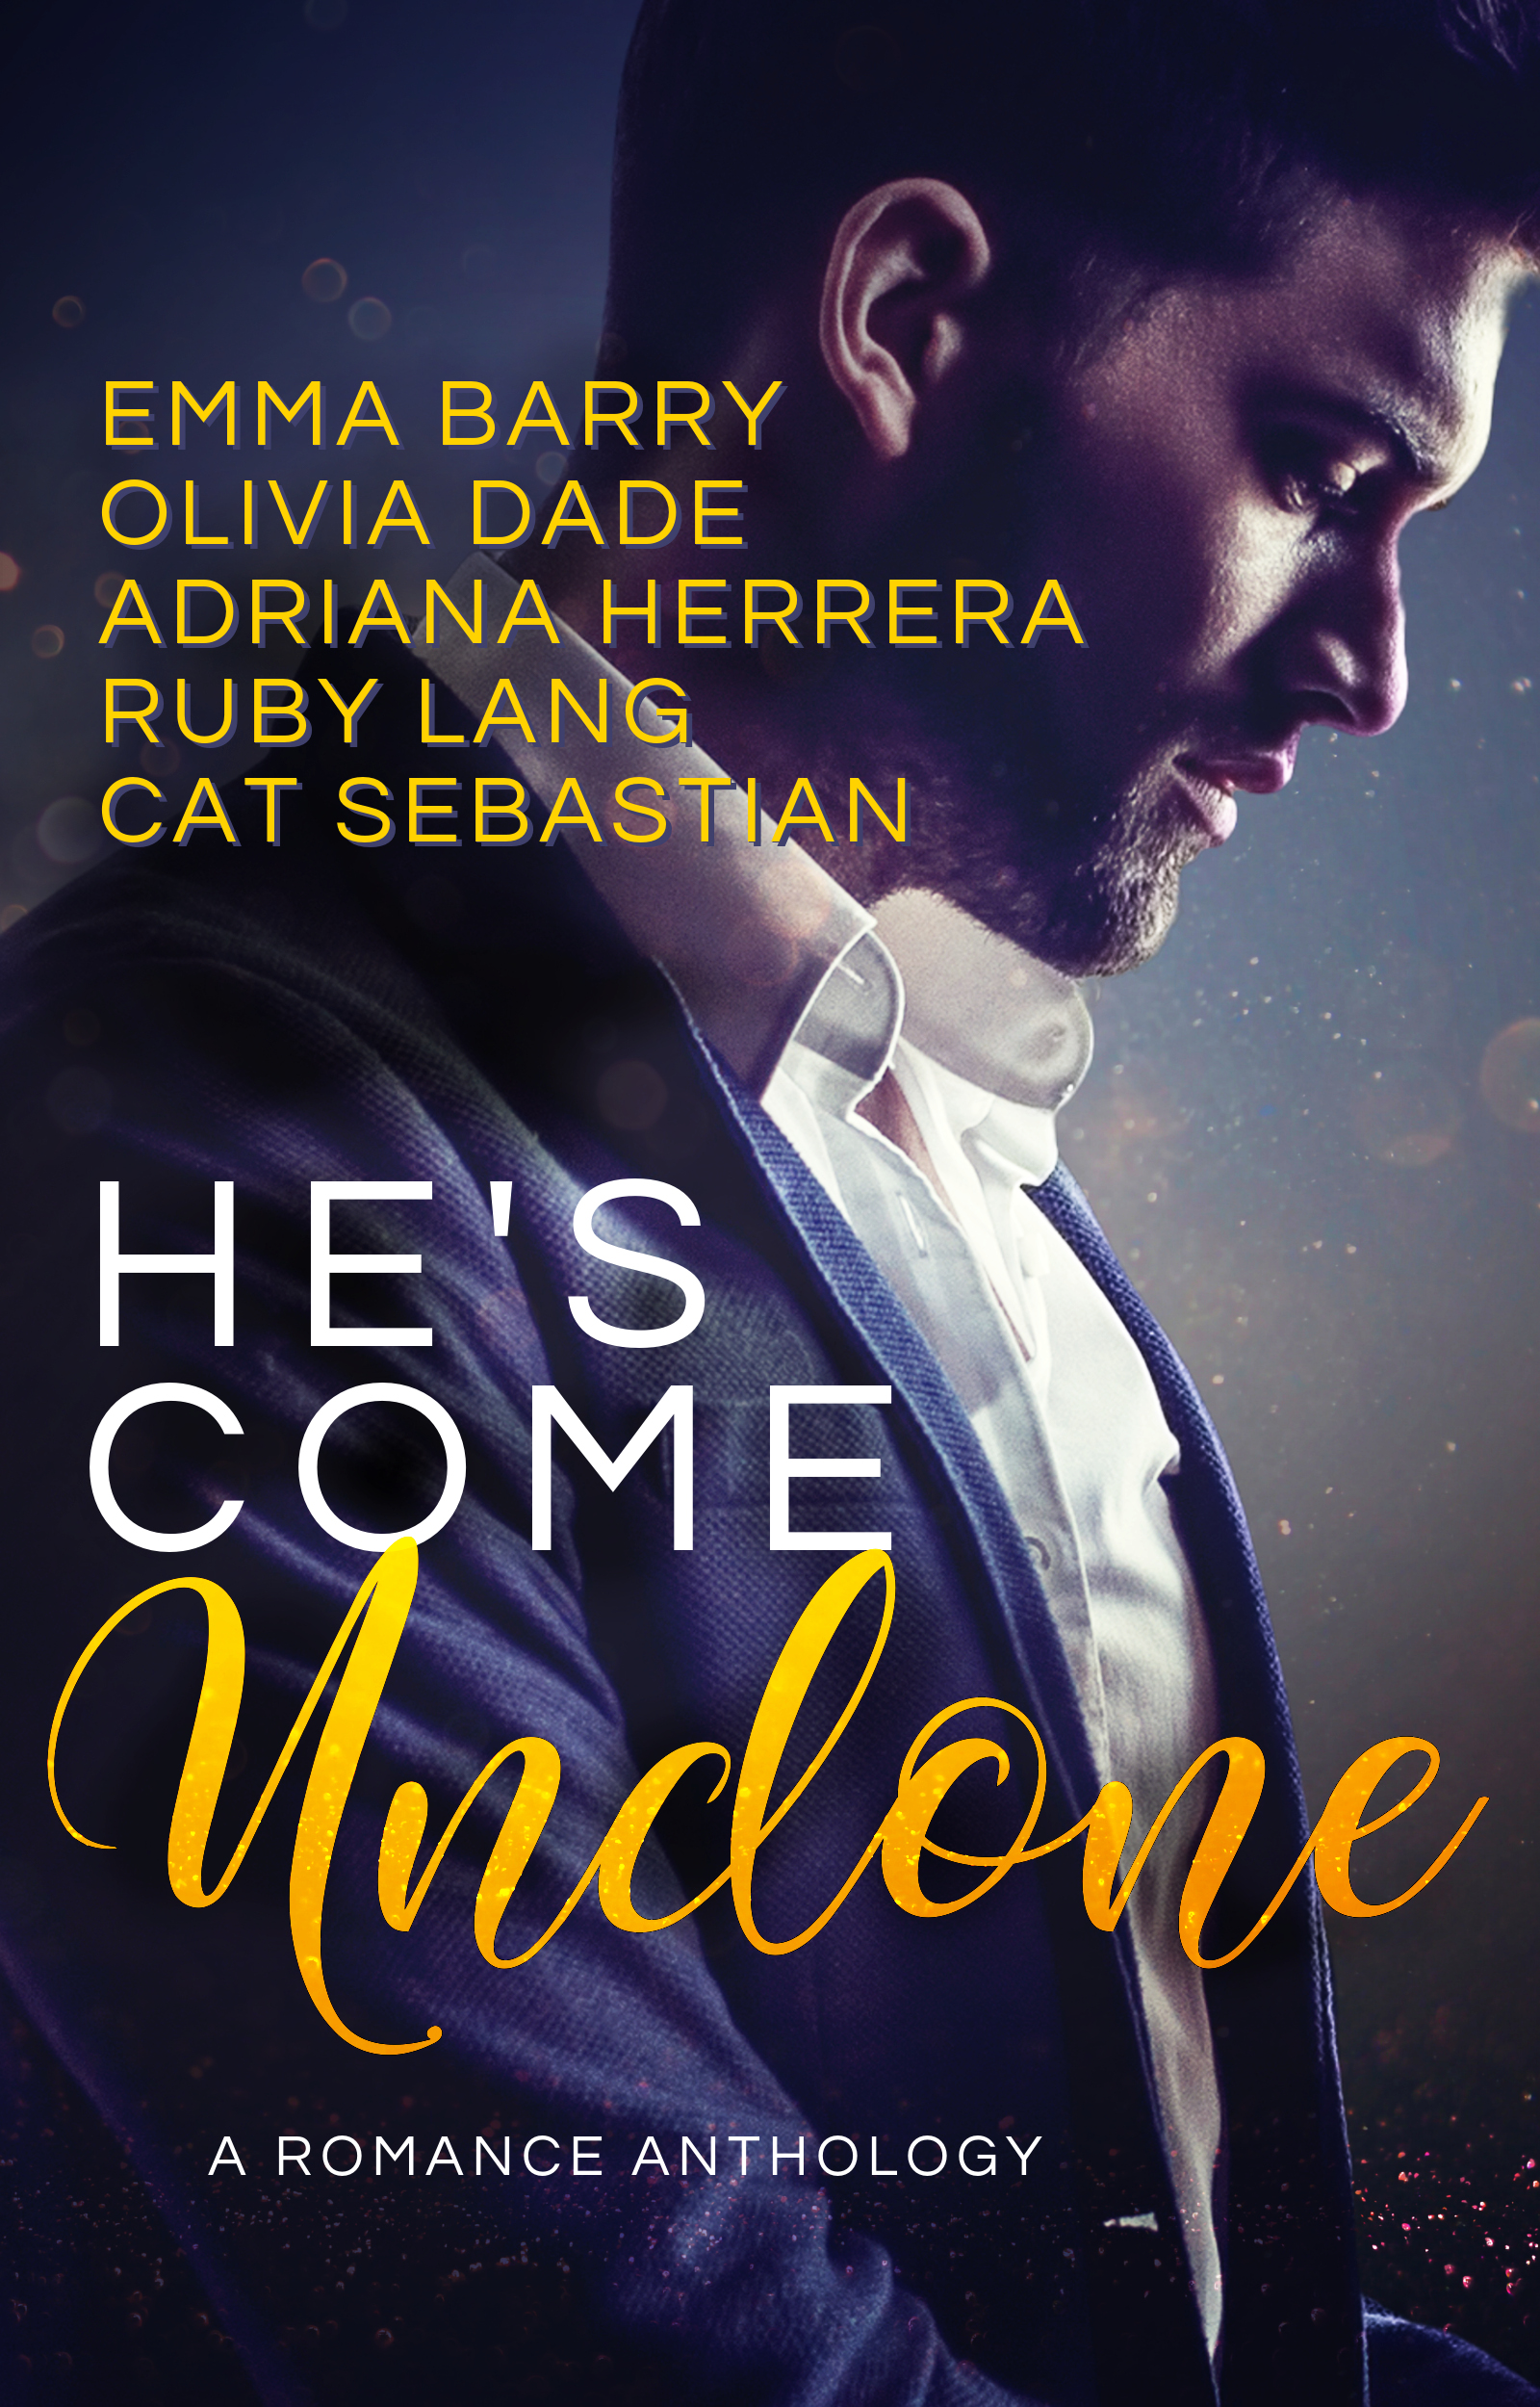 Cover of HE'S COME UNDONE, a romance anthology with Emma Barry, Adriana Herrera, Ruby Lang, Cat Sebastian and ME! It shows a man in a suit with a loosened collar looking hot but distressed.